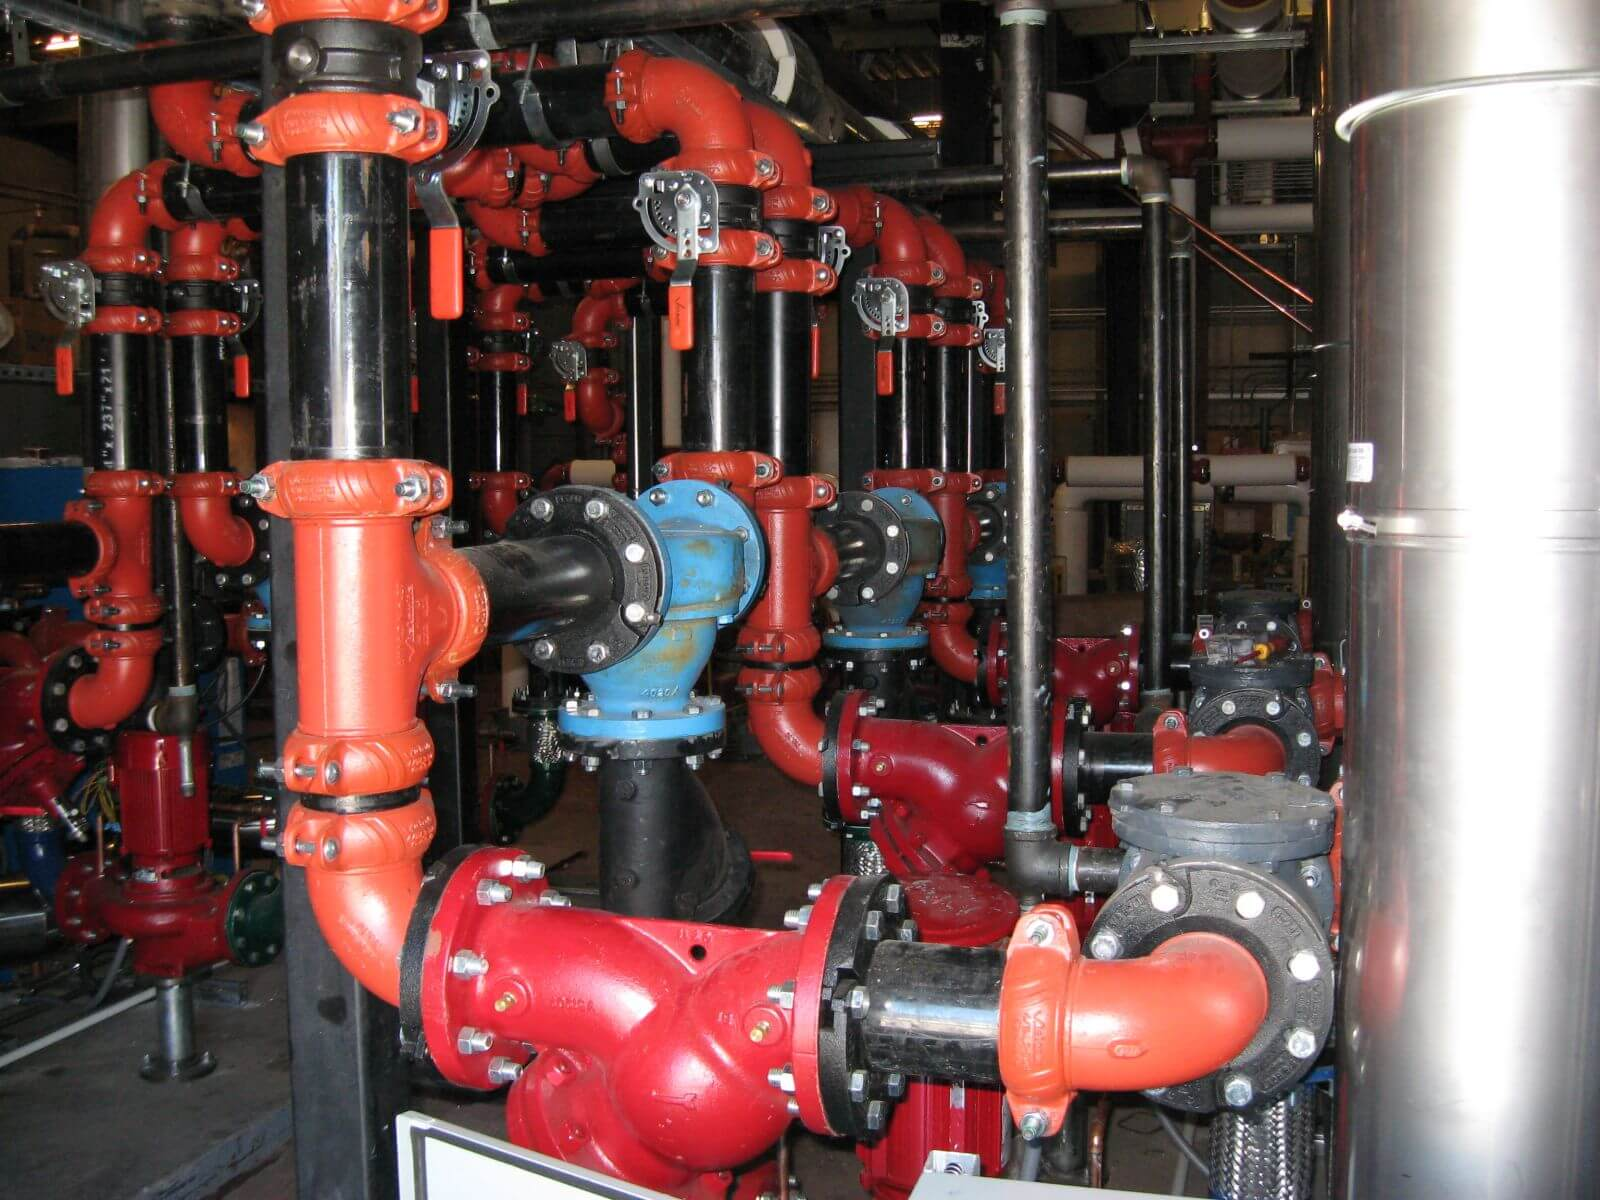 Mills High School Hvac Piping And Controls - Dowdle & Sons Mechanical